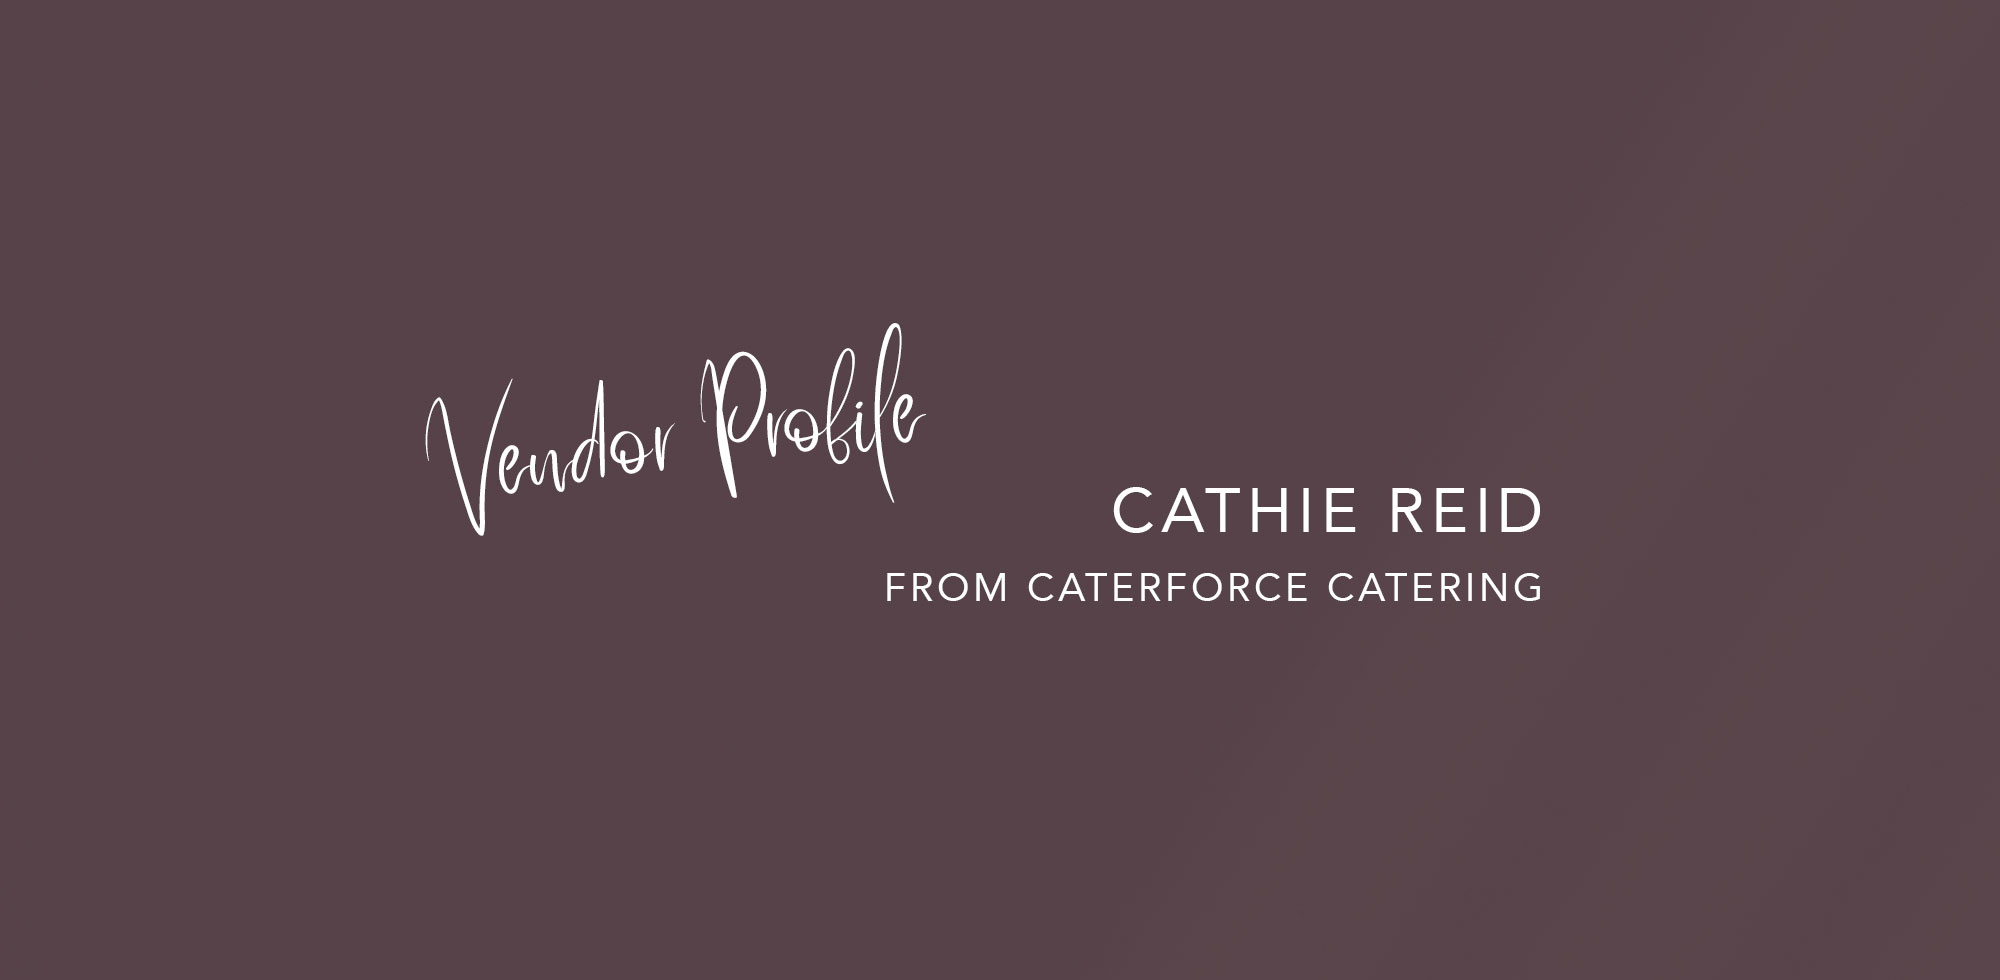 Hunter Valley Wedding Planner Magazine Vendor Profile Cathie Reid Caterforce